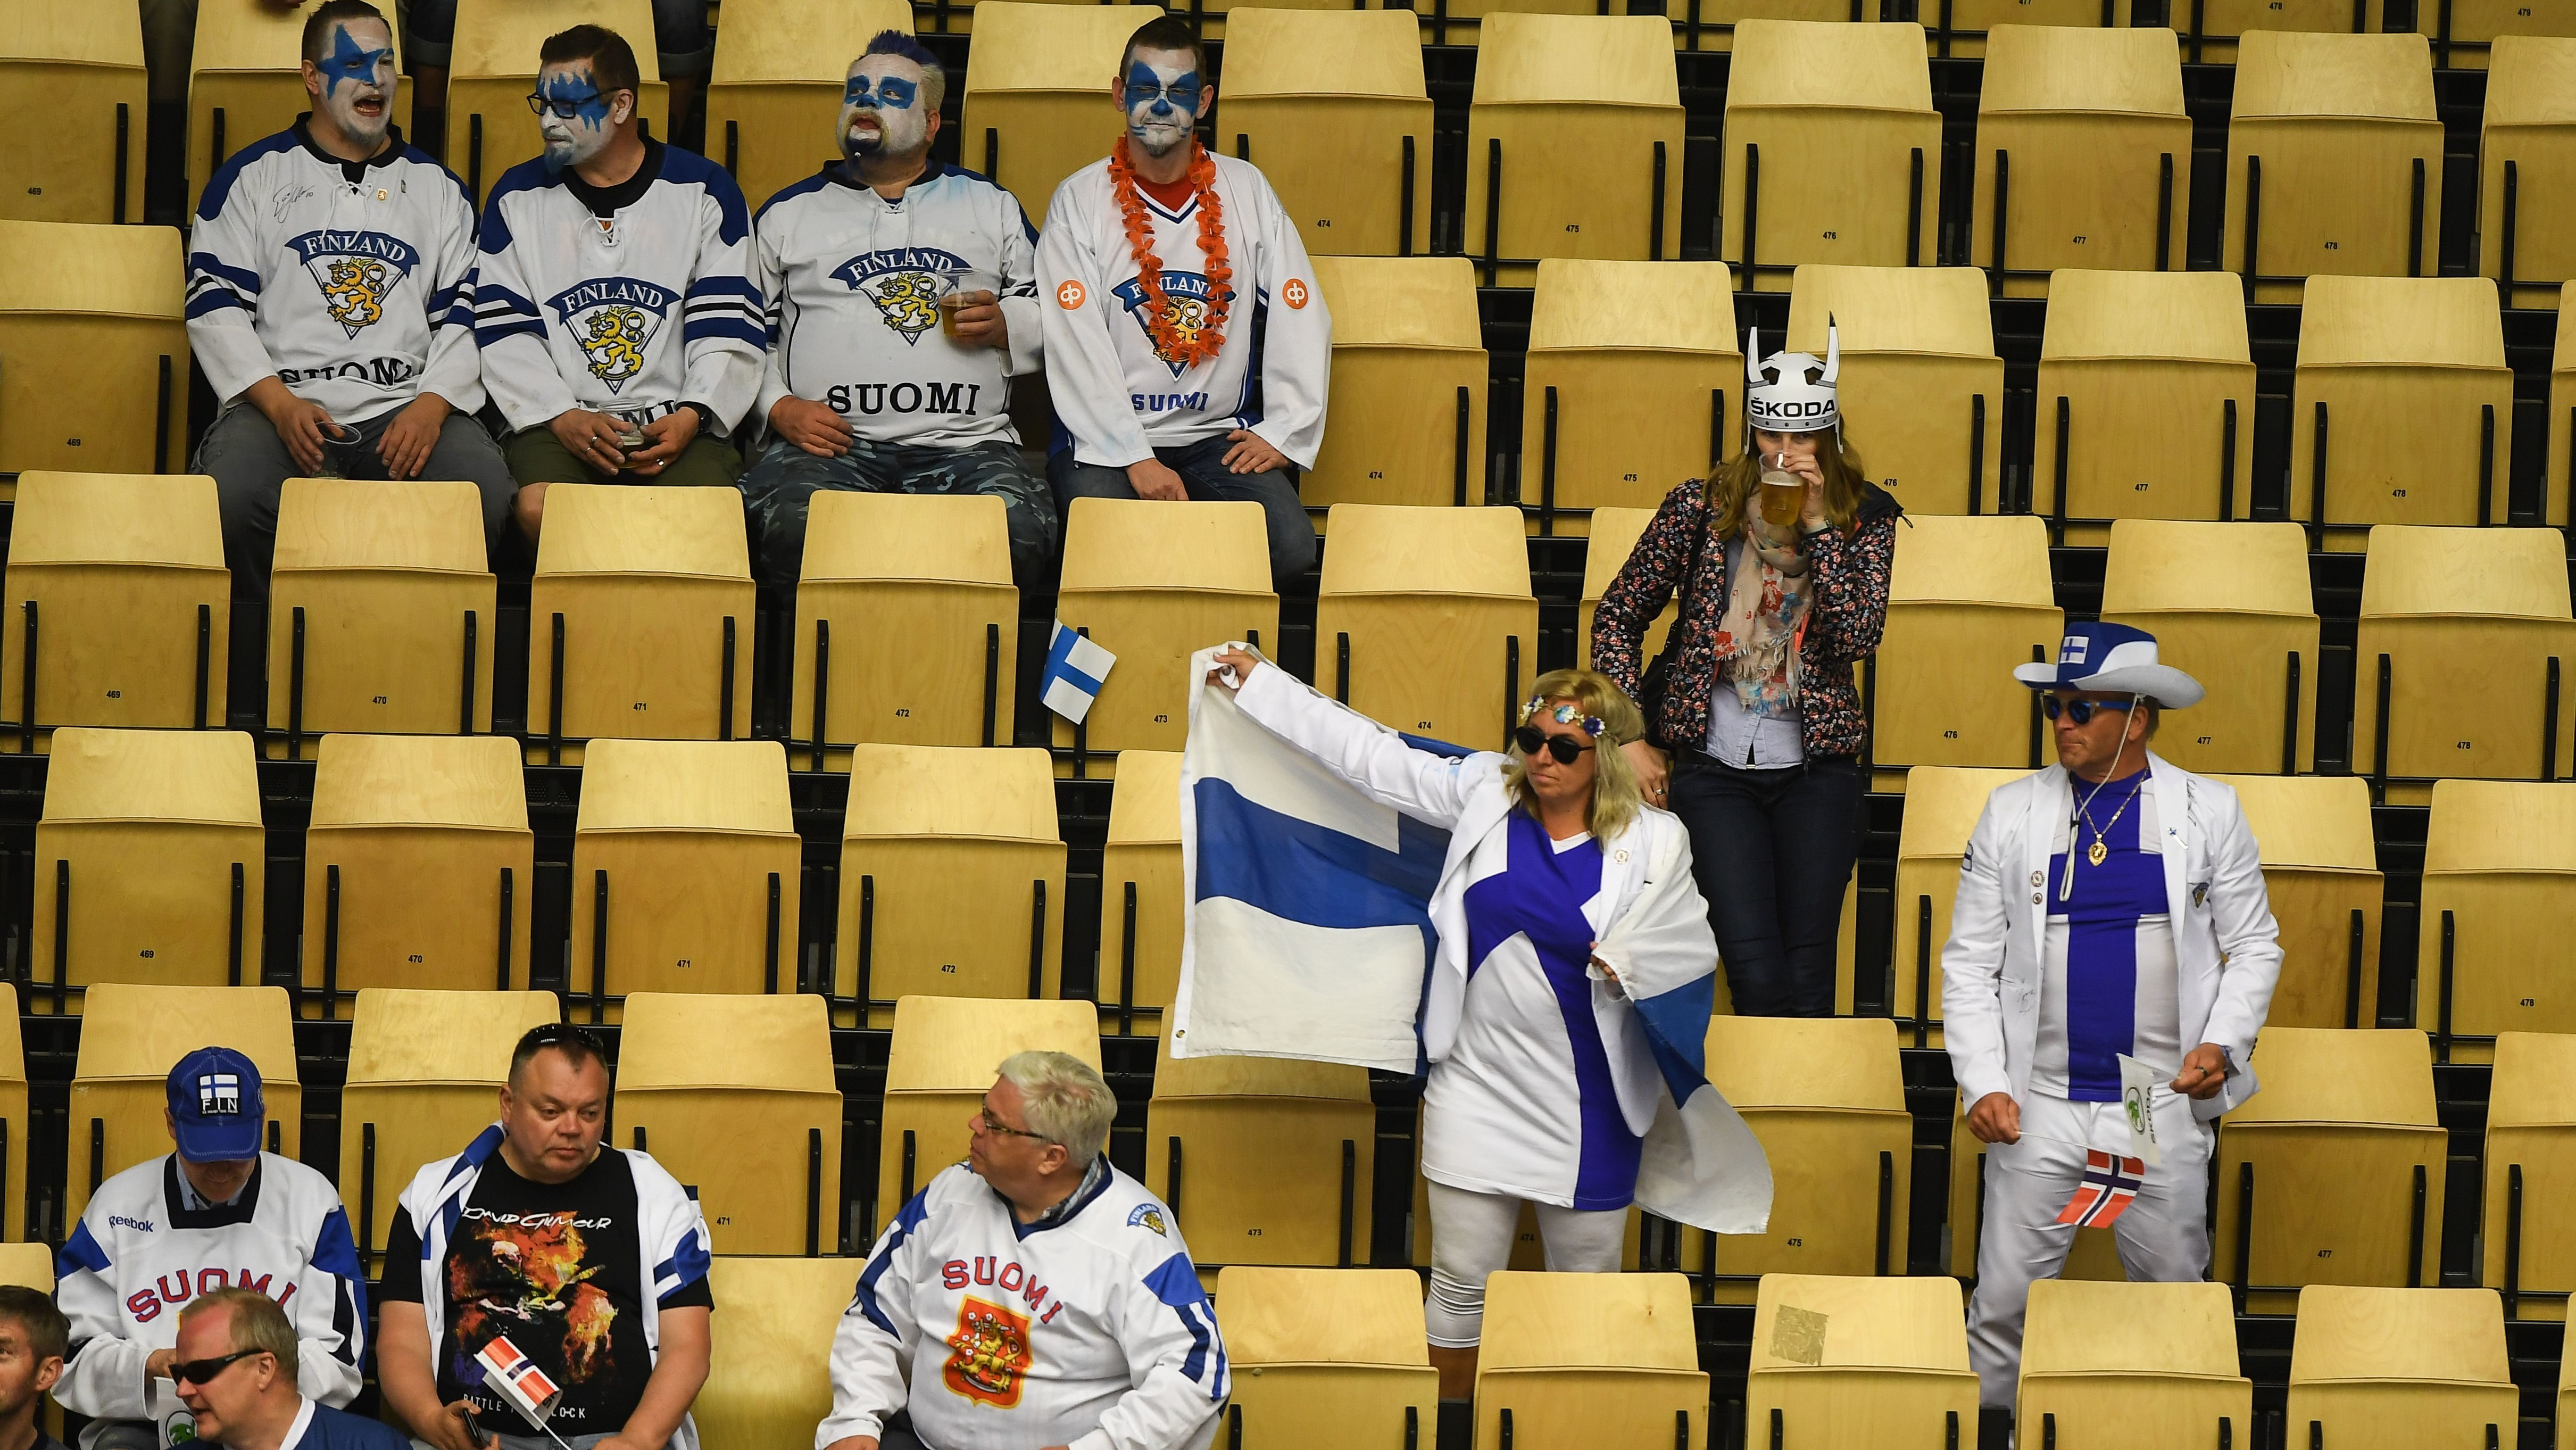 Supporters of Finland during the IIHF World Championship group B ice hockey match between Finland and Norway in Jyske Bank Boxen in Herning, Denmark, 08 May 2018.